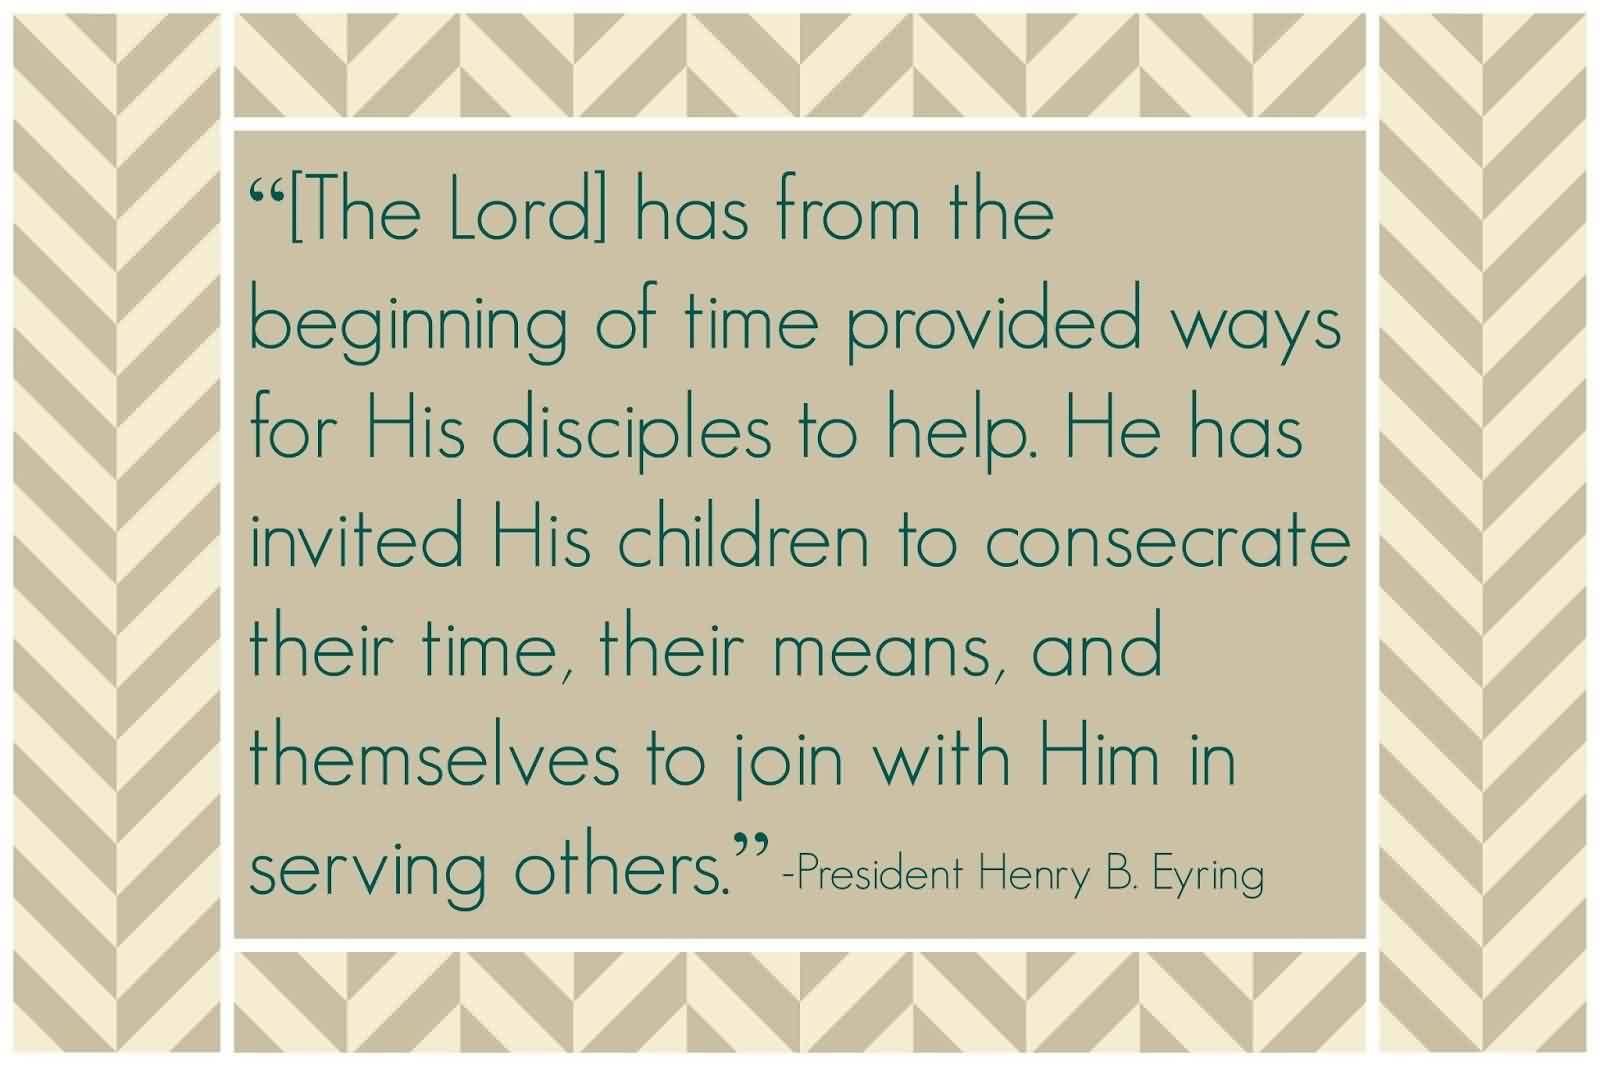 Famous Charity Quote By President Henry B.Eyring~ The lord has from the beginning of time provided ways for his disciples to help.